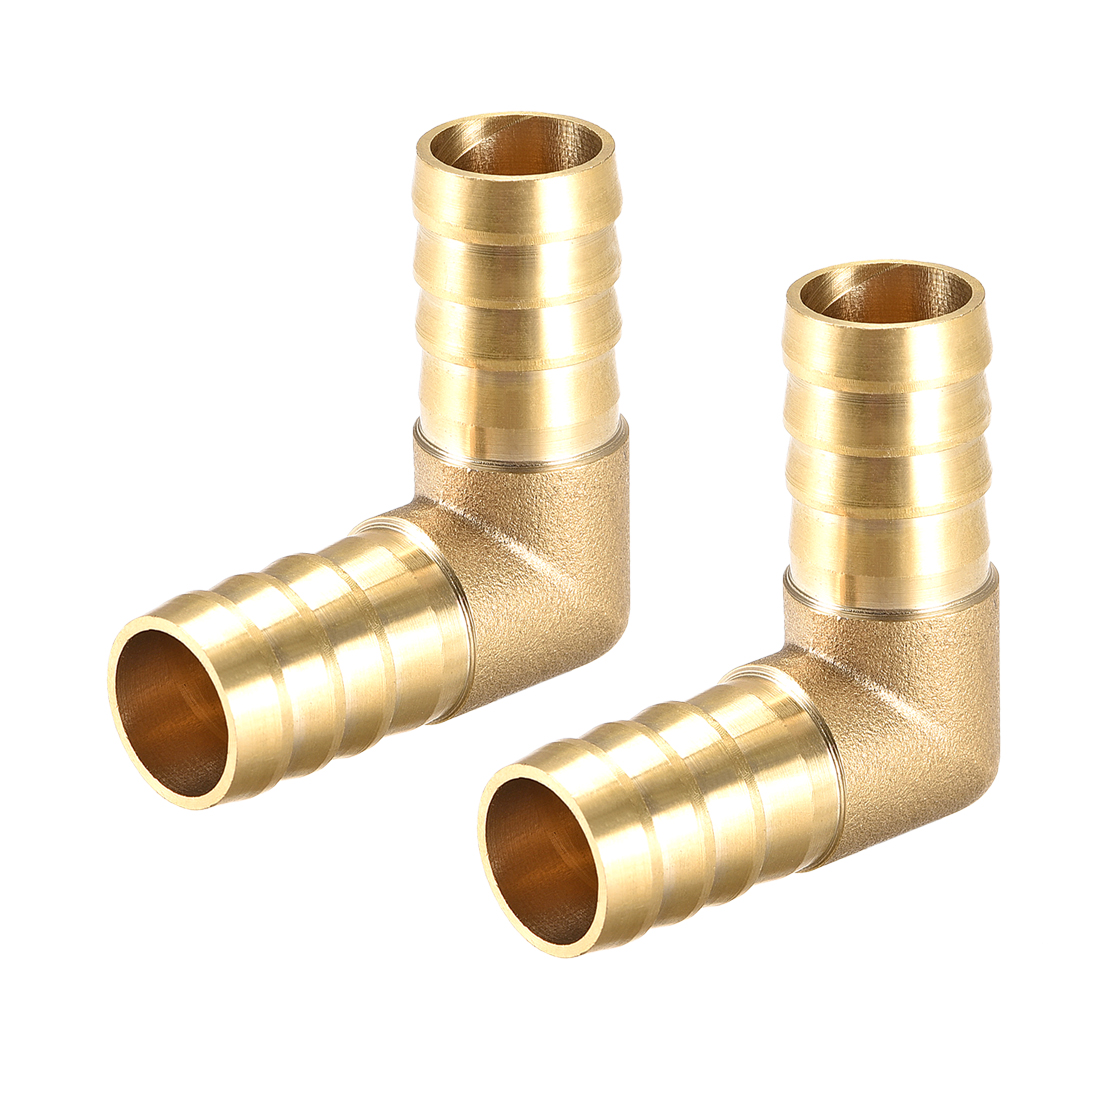 16mm Barb Brass Hose Fitting 90 Degree Elbow Pipe Coupler Tubing Adapter 2pcs